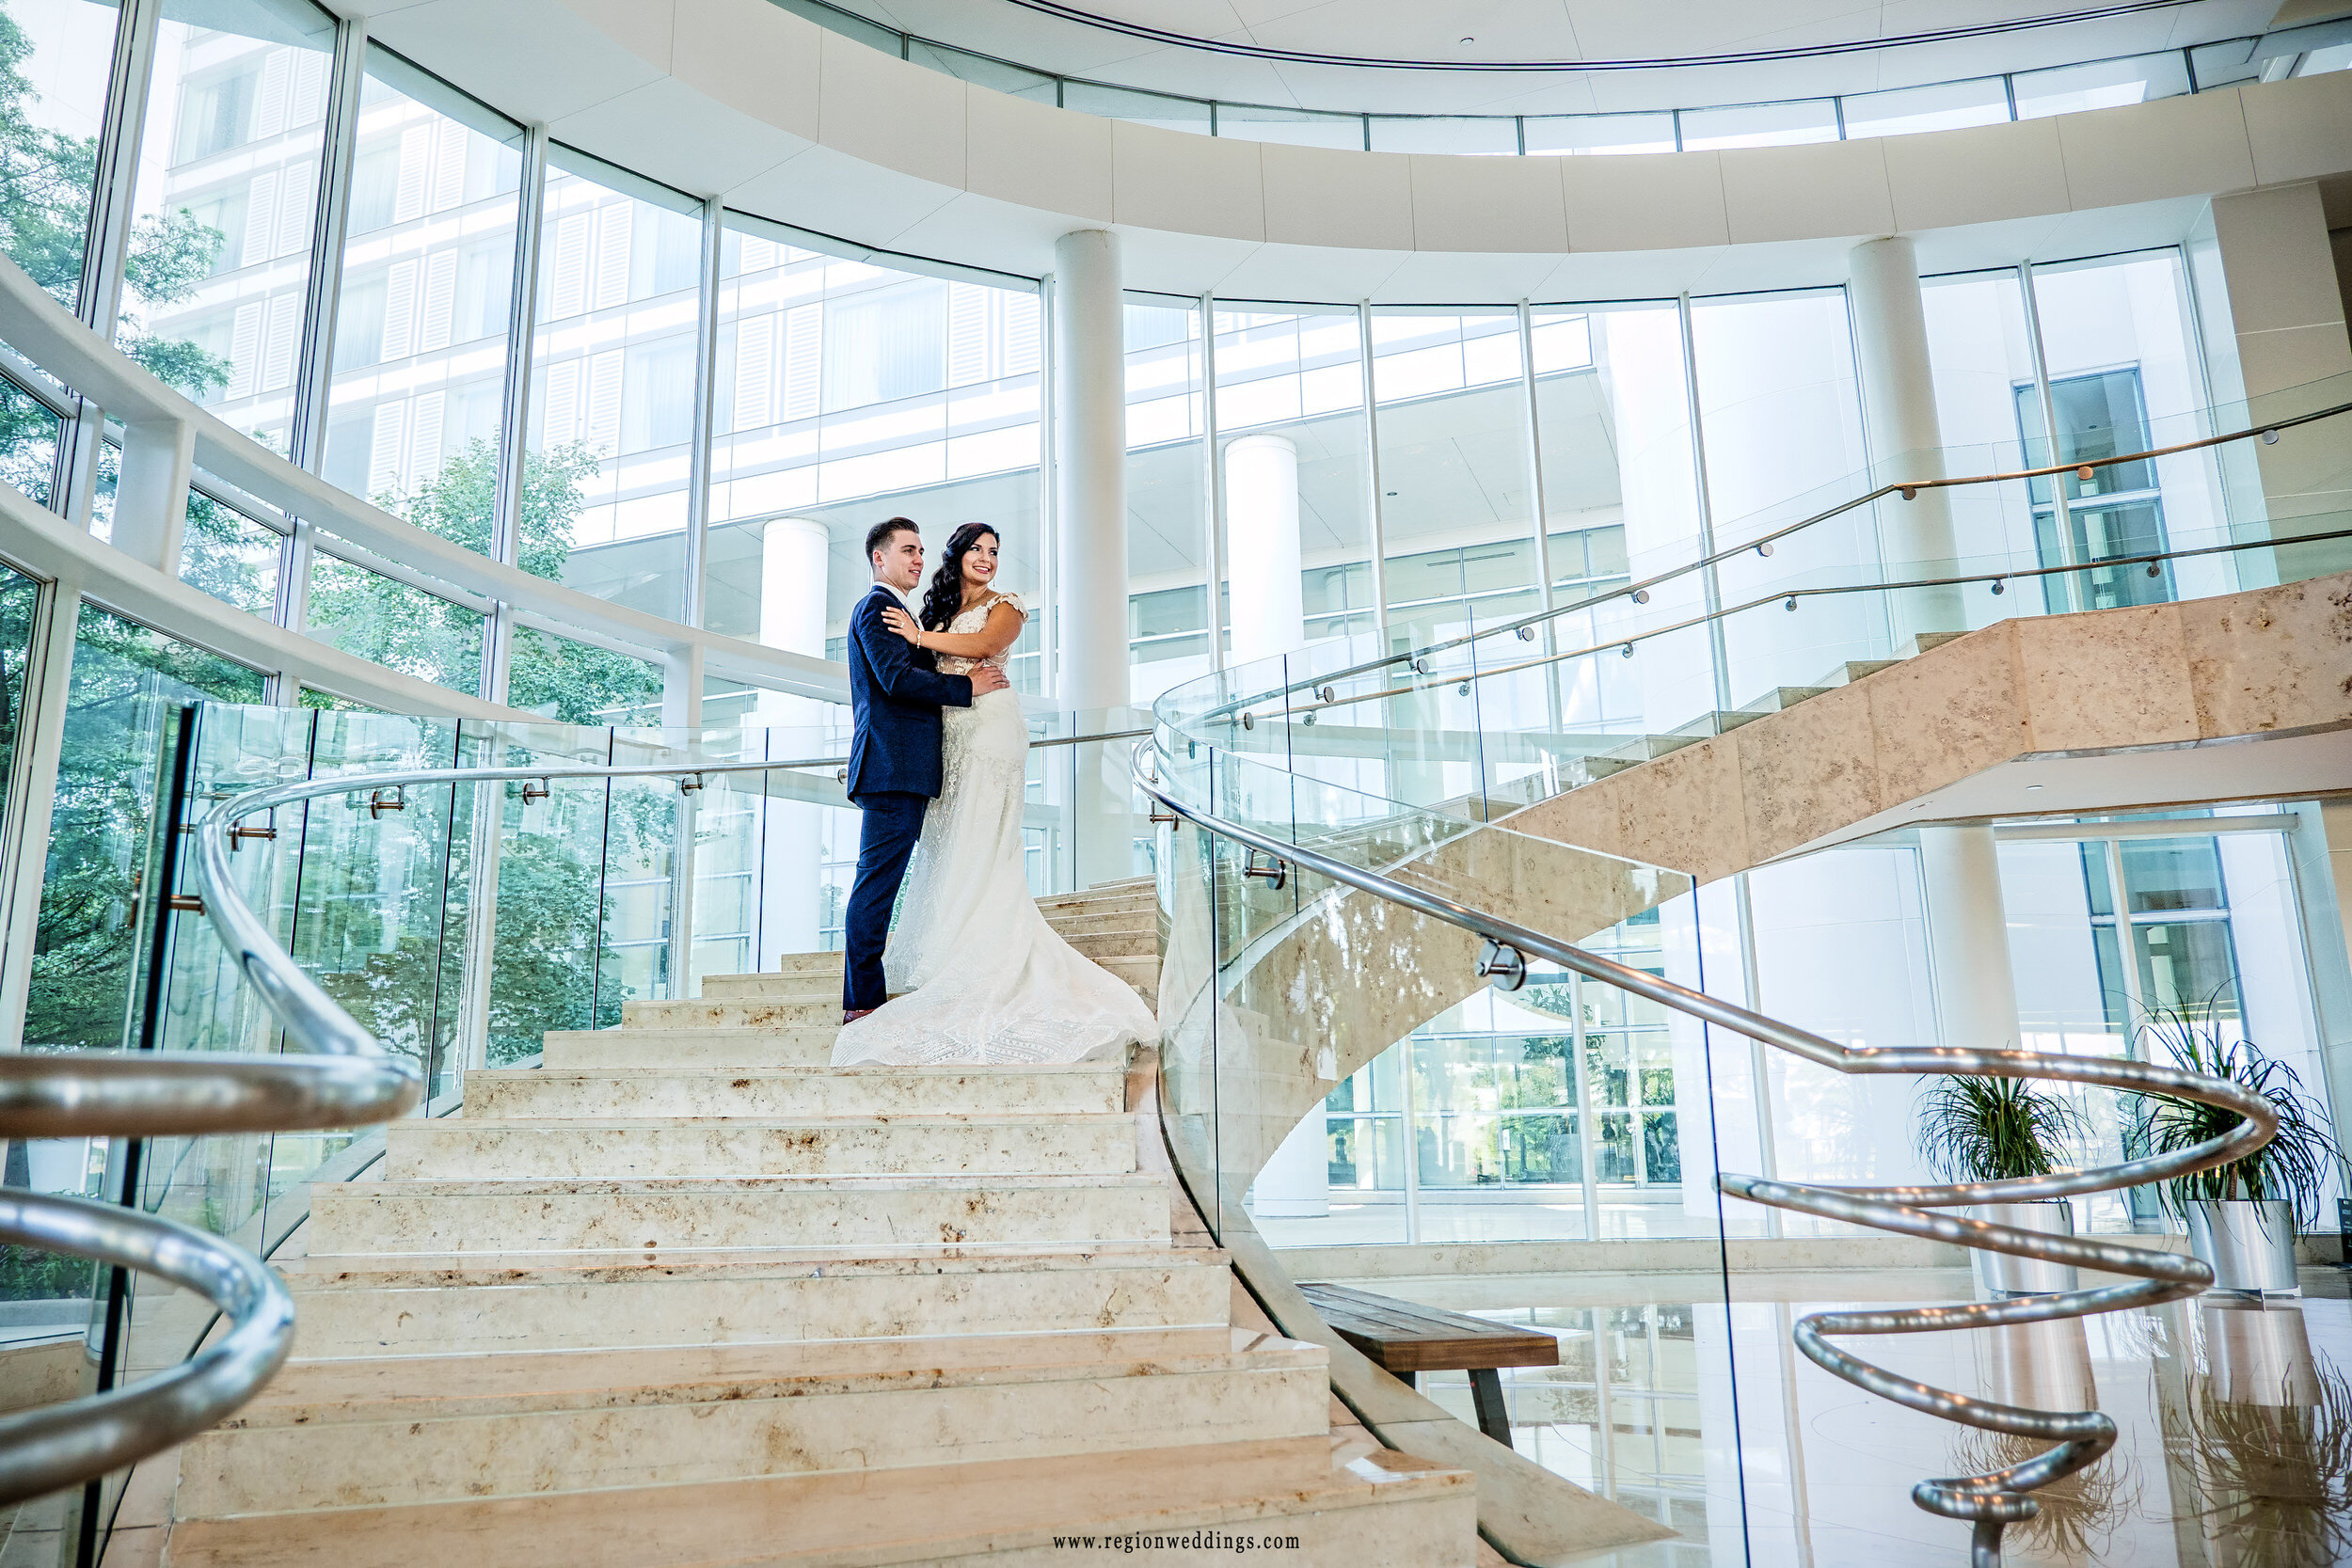 Bride and groom on the staircase at The Renaissance in Schaumburg.